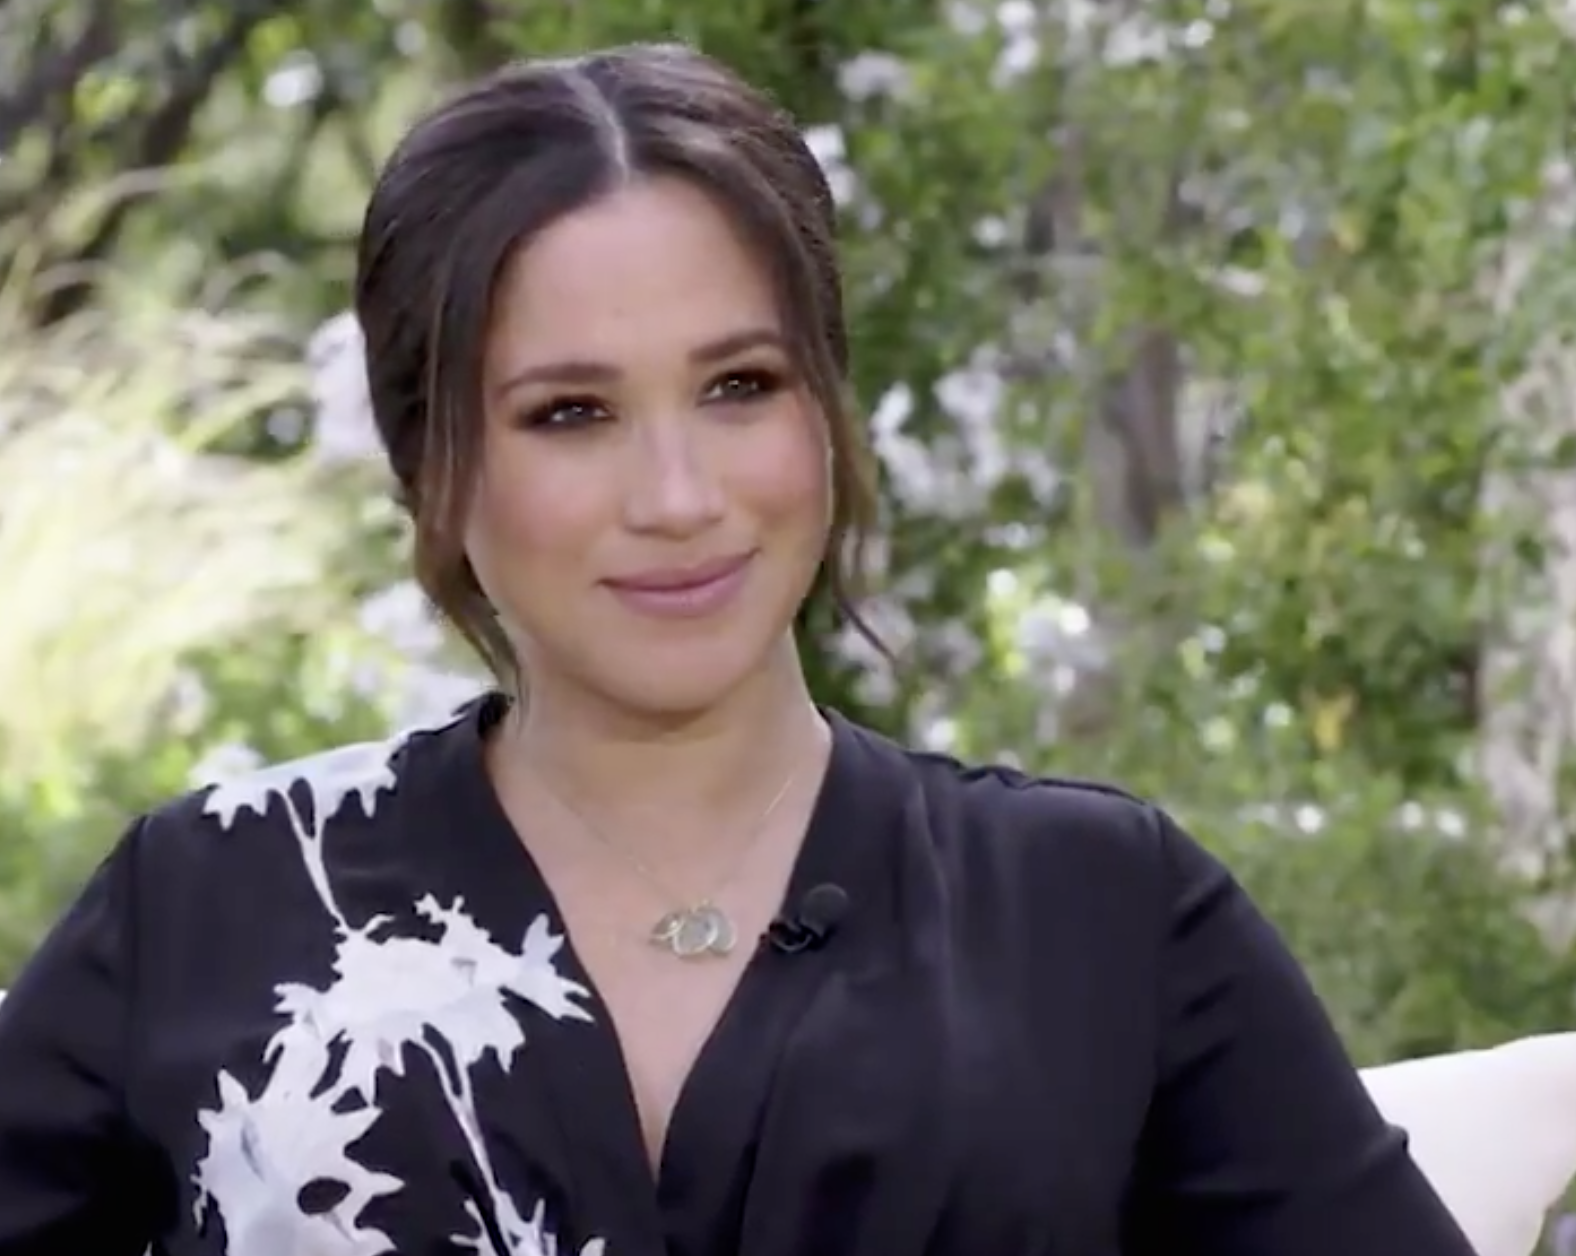 Meghan Markle says it's 'liberating' to speak for herself